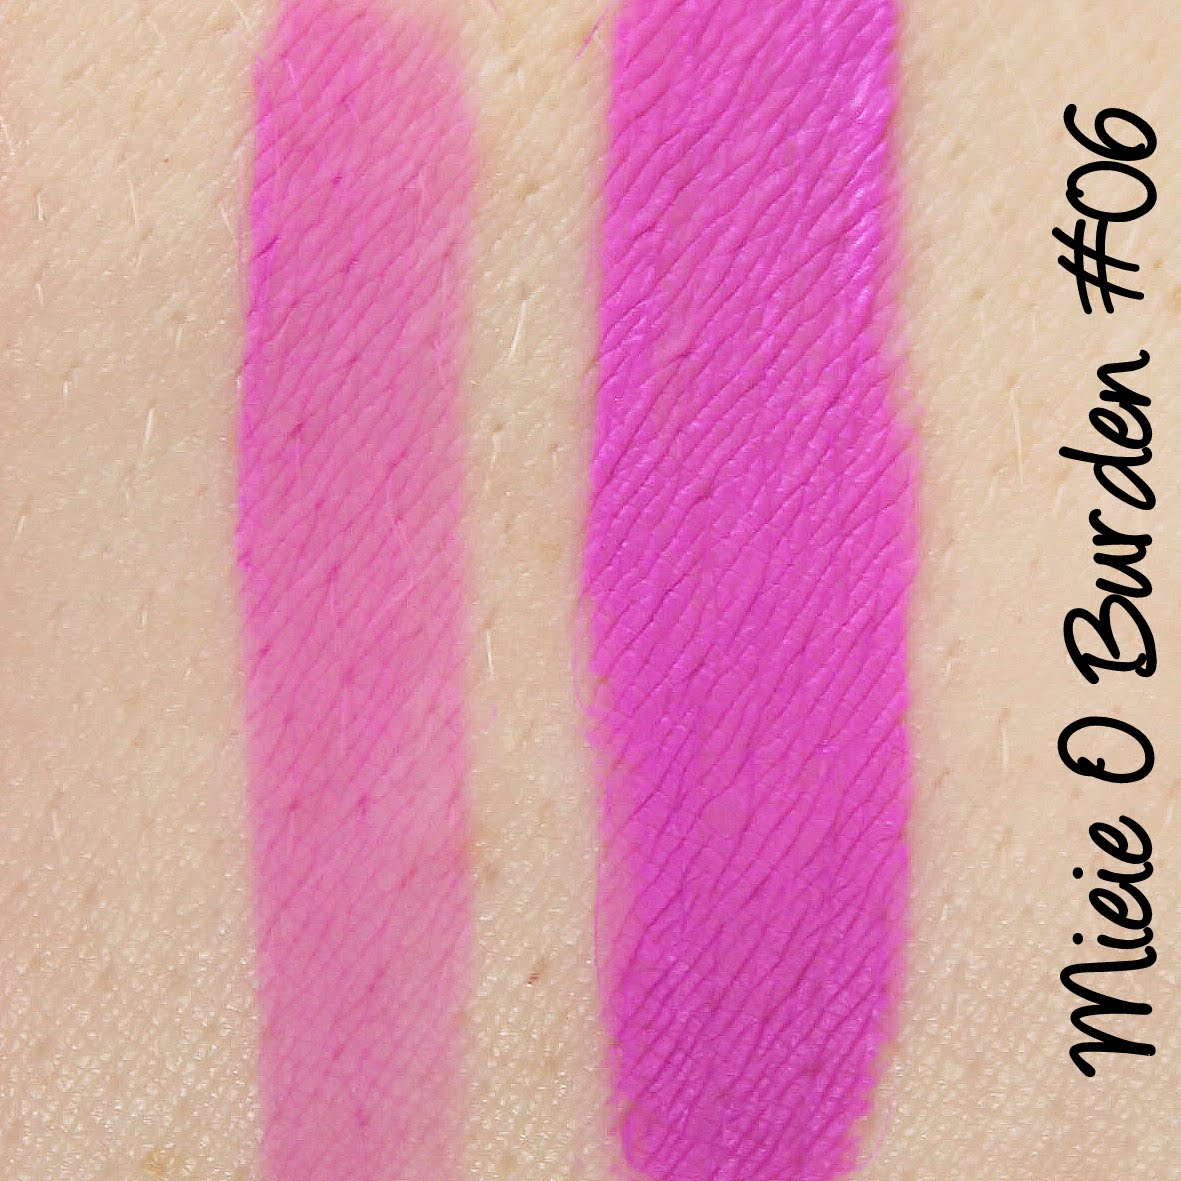 Miei O Burden Moisturizing Lipgloss #06 Swatches & Review